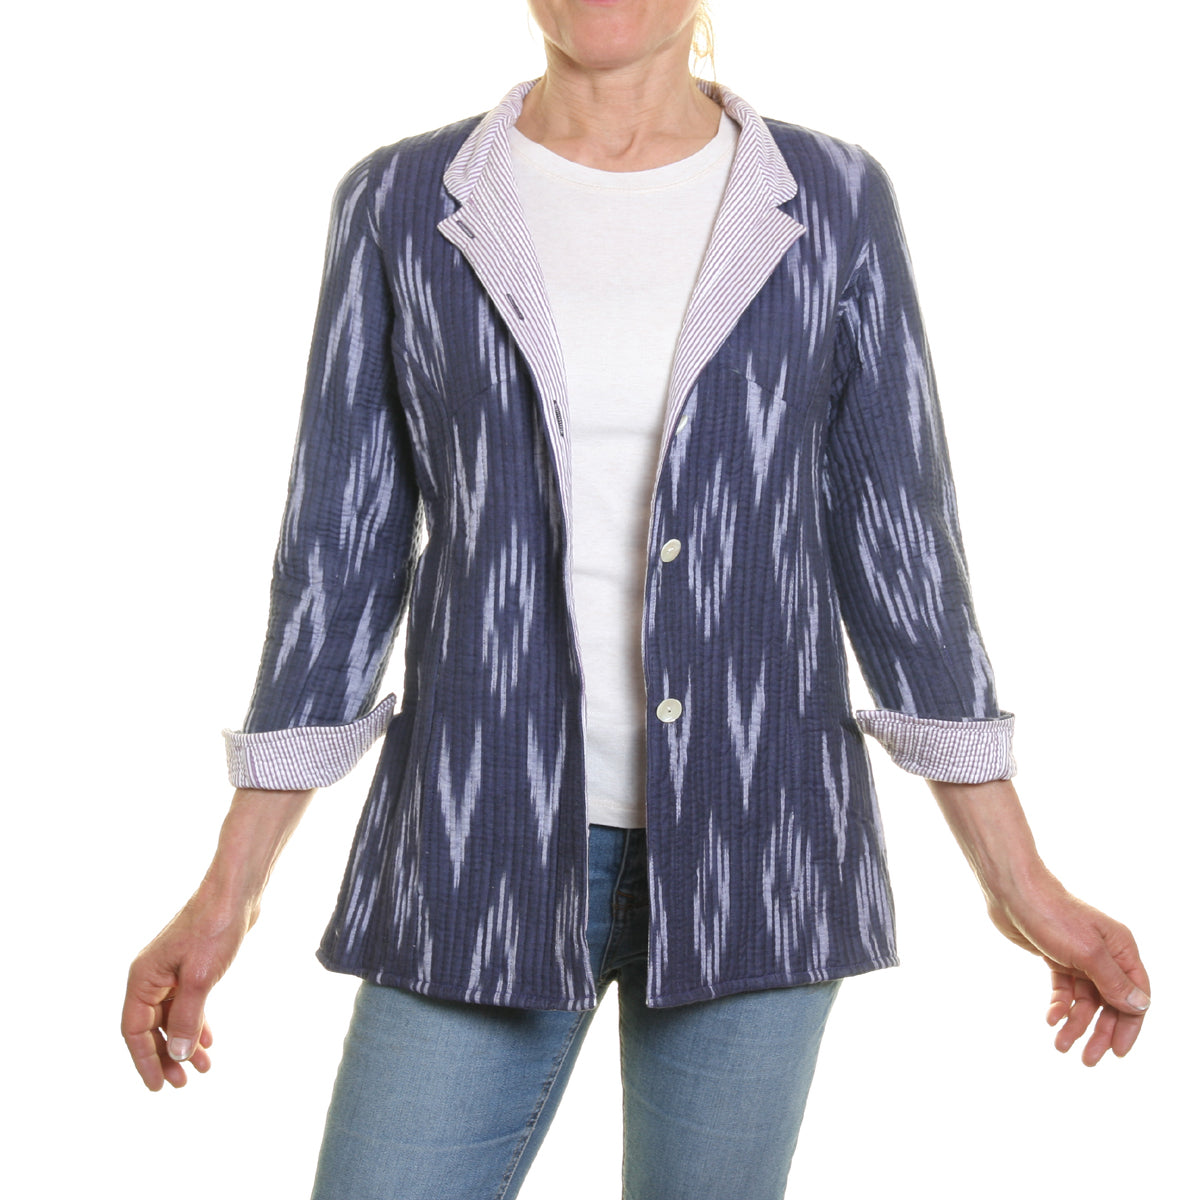 Cotton Quilted Opera Jacket - Blue and Pale Blue with Striped Lining